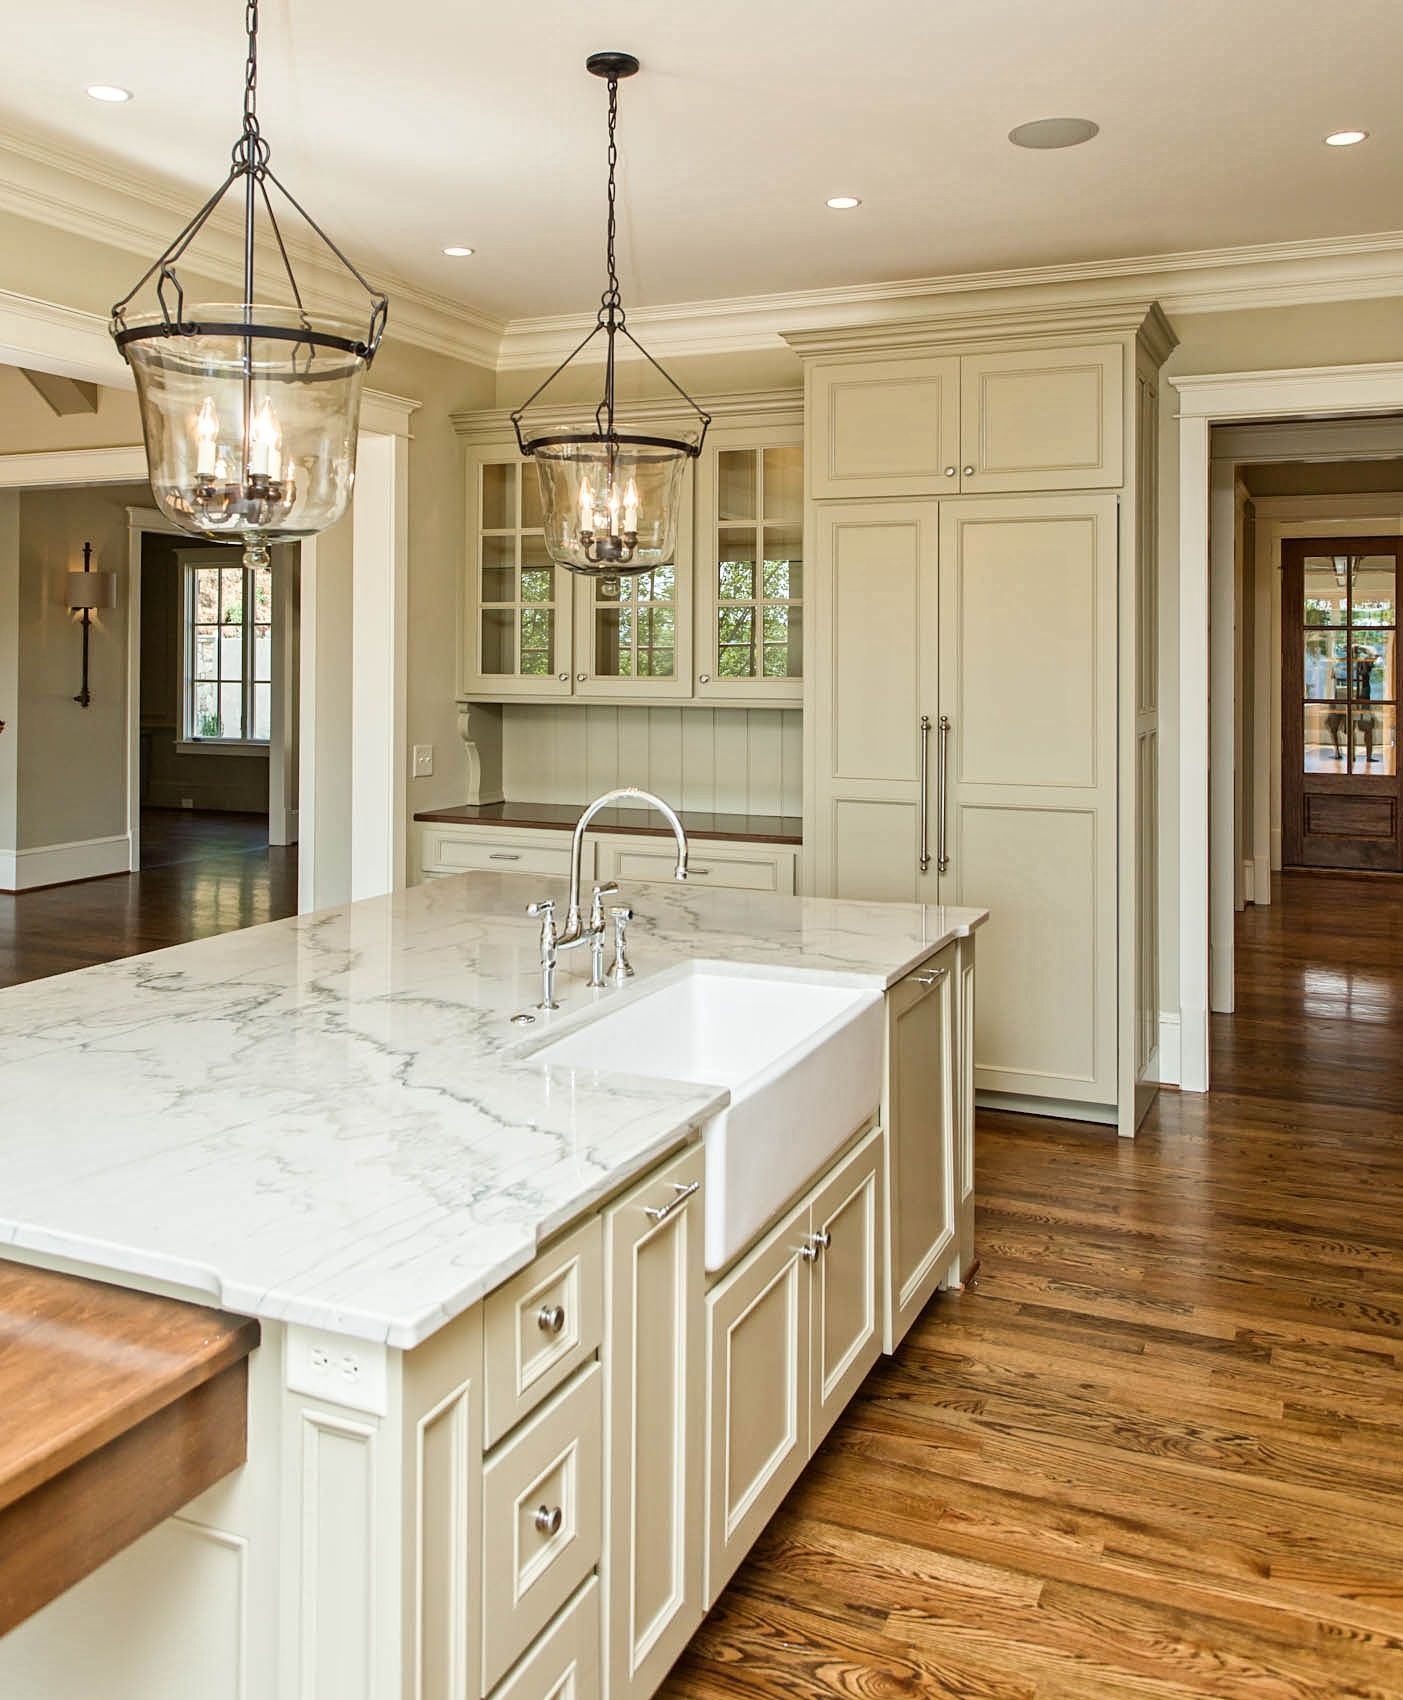 Upper Kitchen Cabinet Decorations: Antique White Kitchen With Marlbe Countertops And